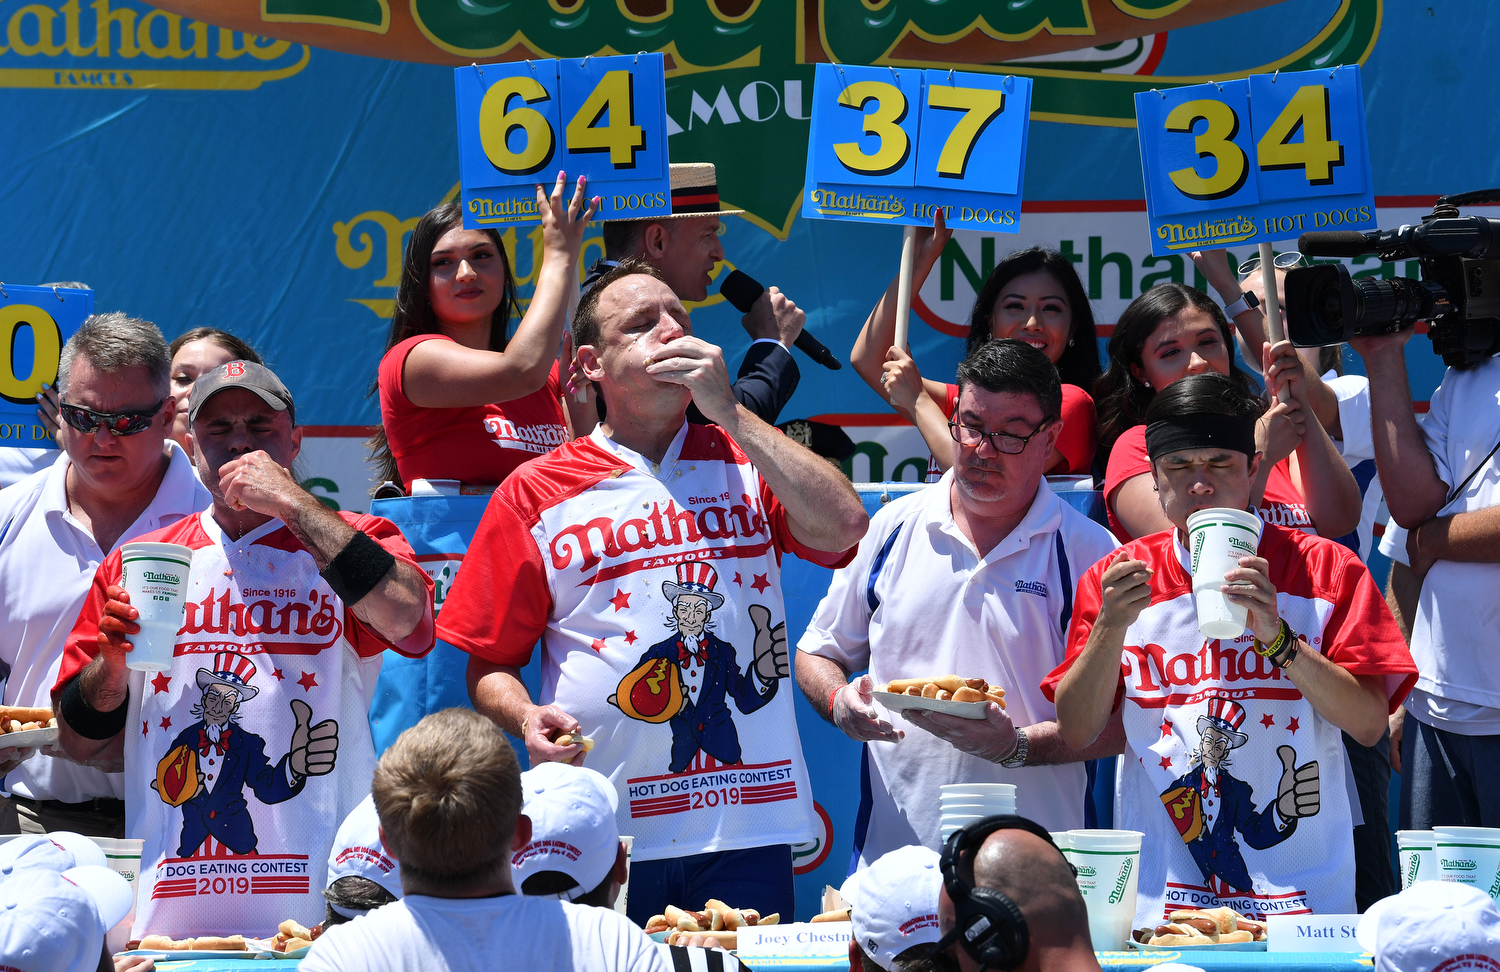 Nathan's July 4th hot dog eating contest